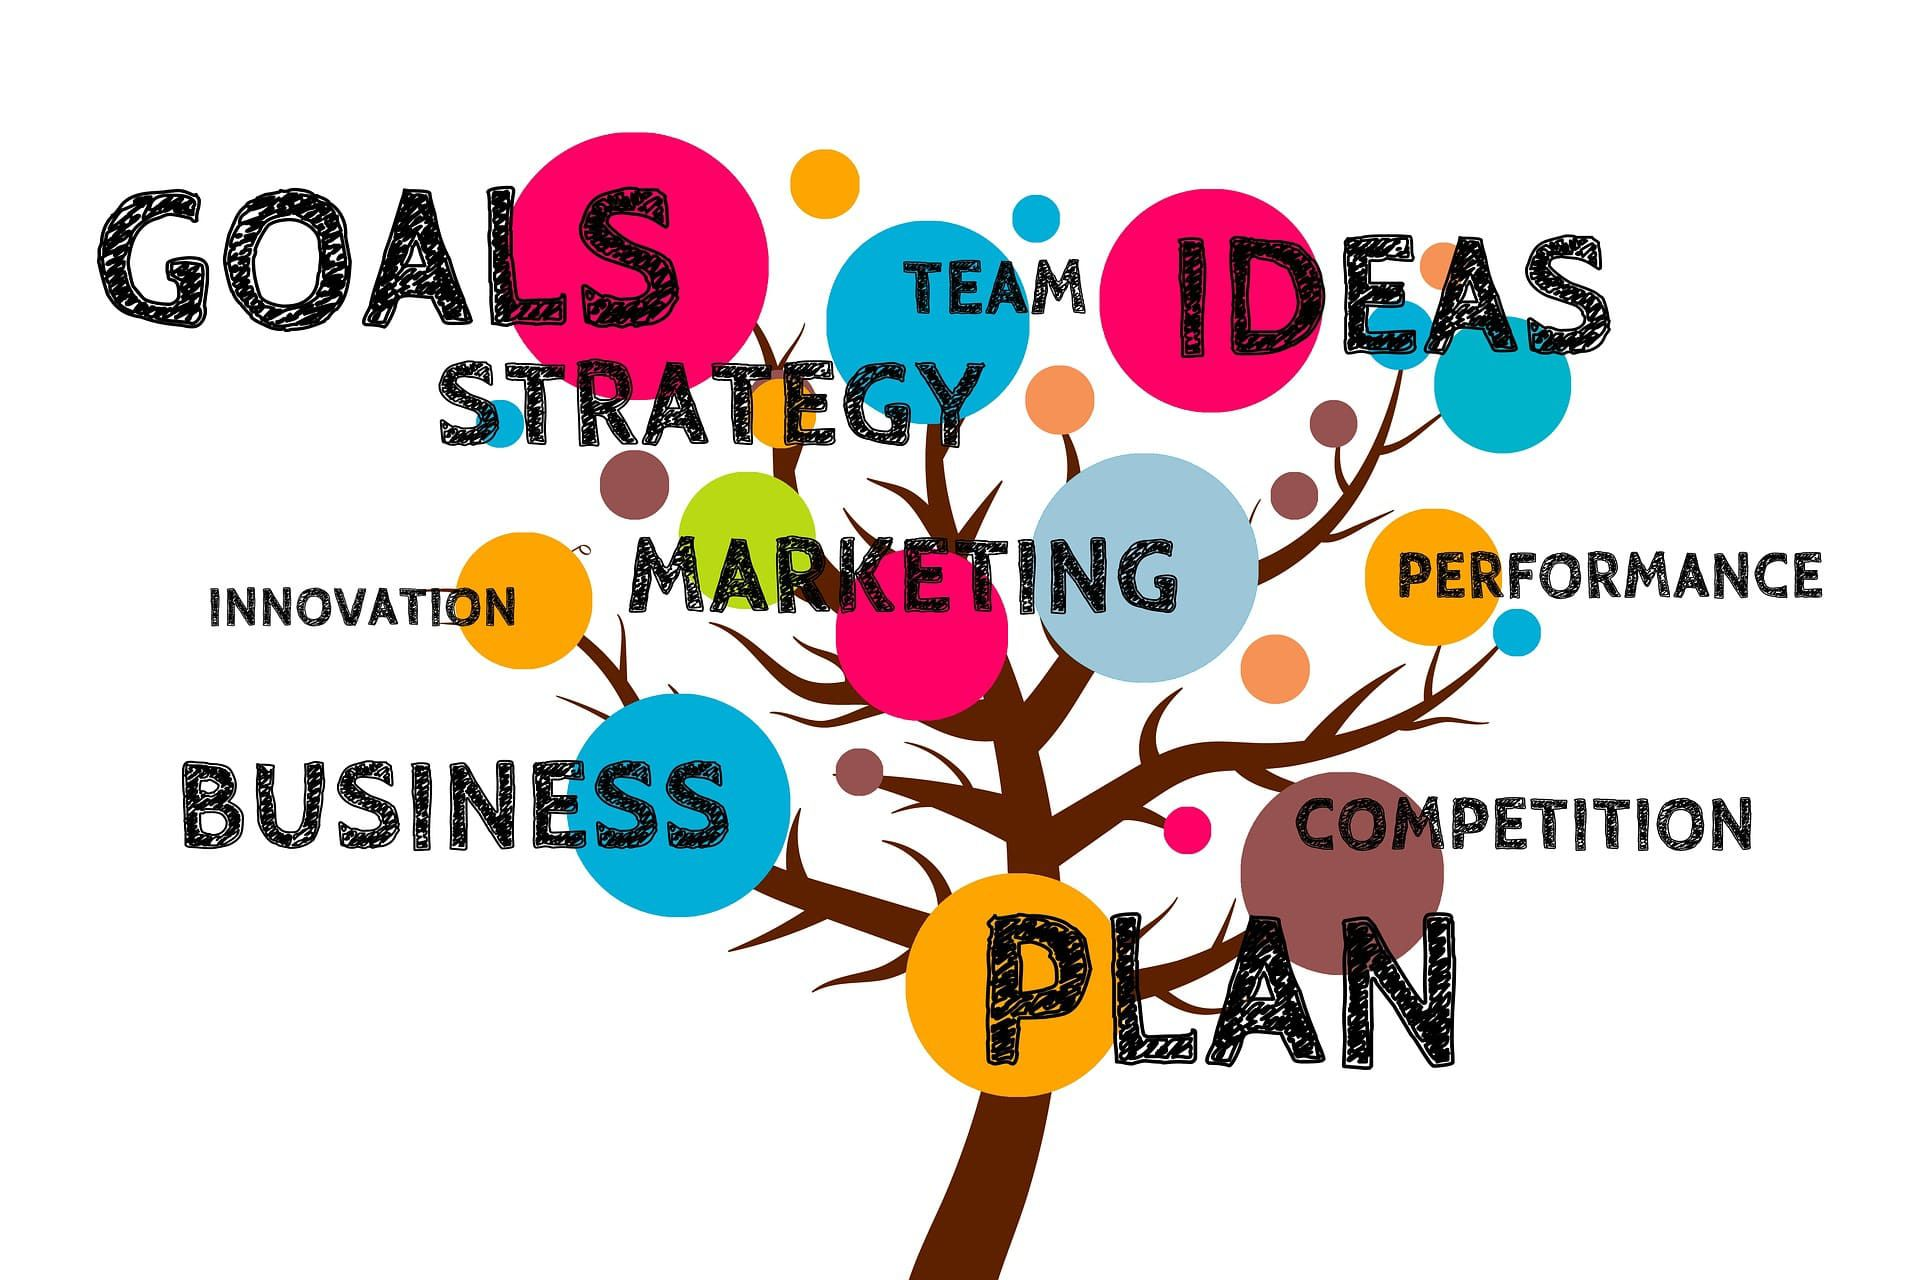 005 Sensational Product Launch Marketing Plan Template Free Example Full